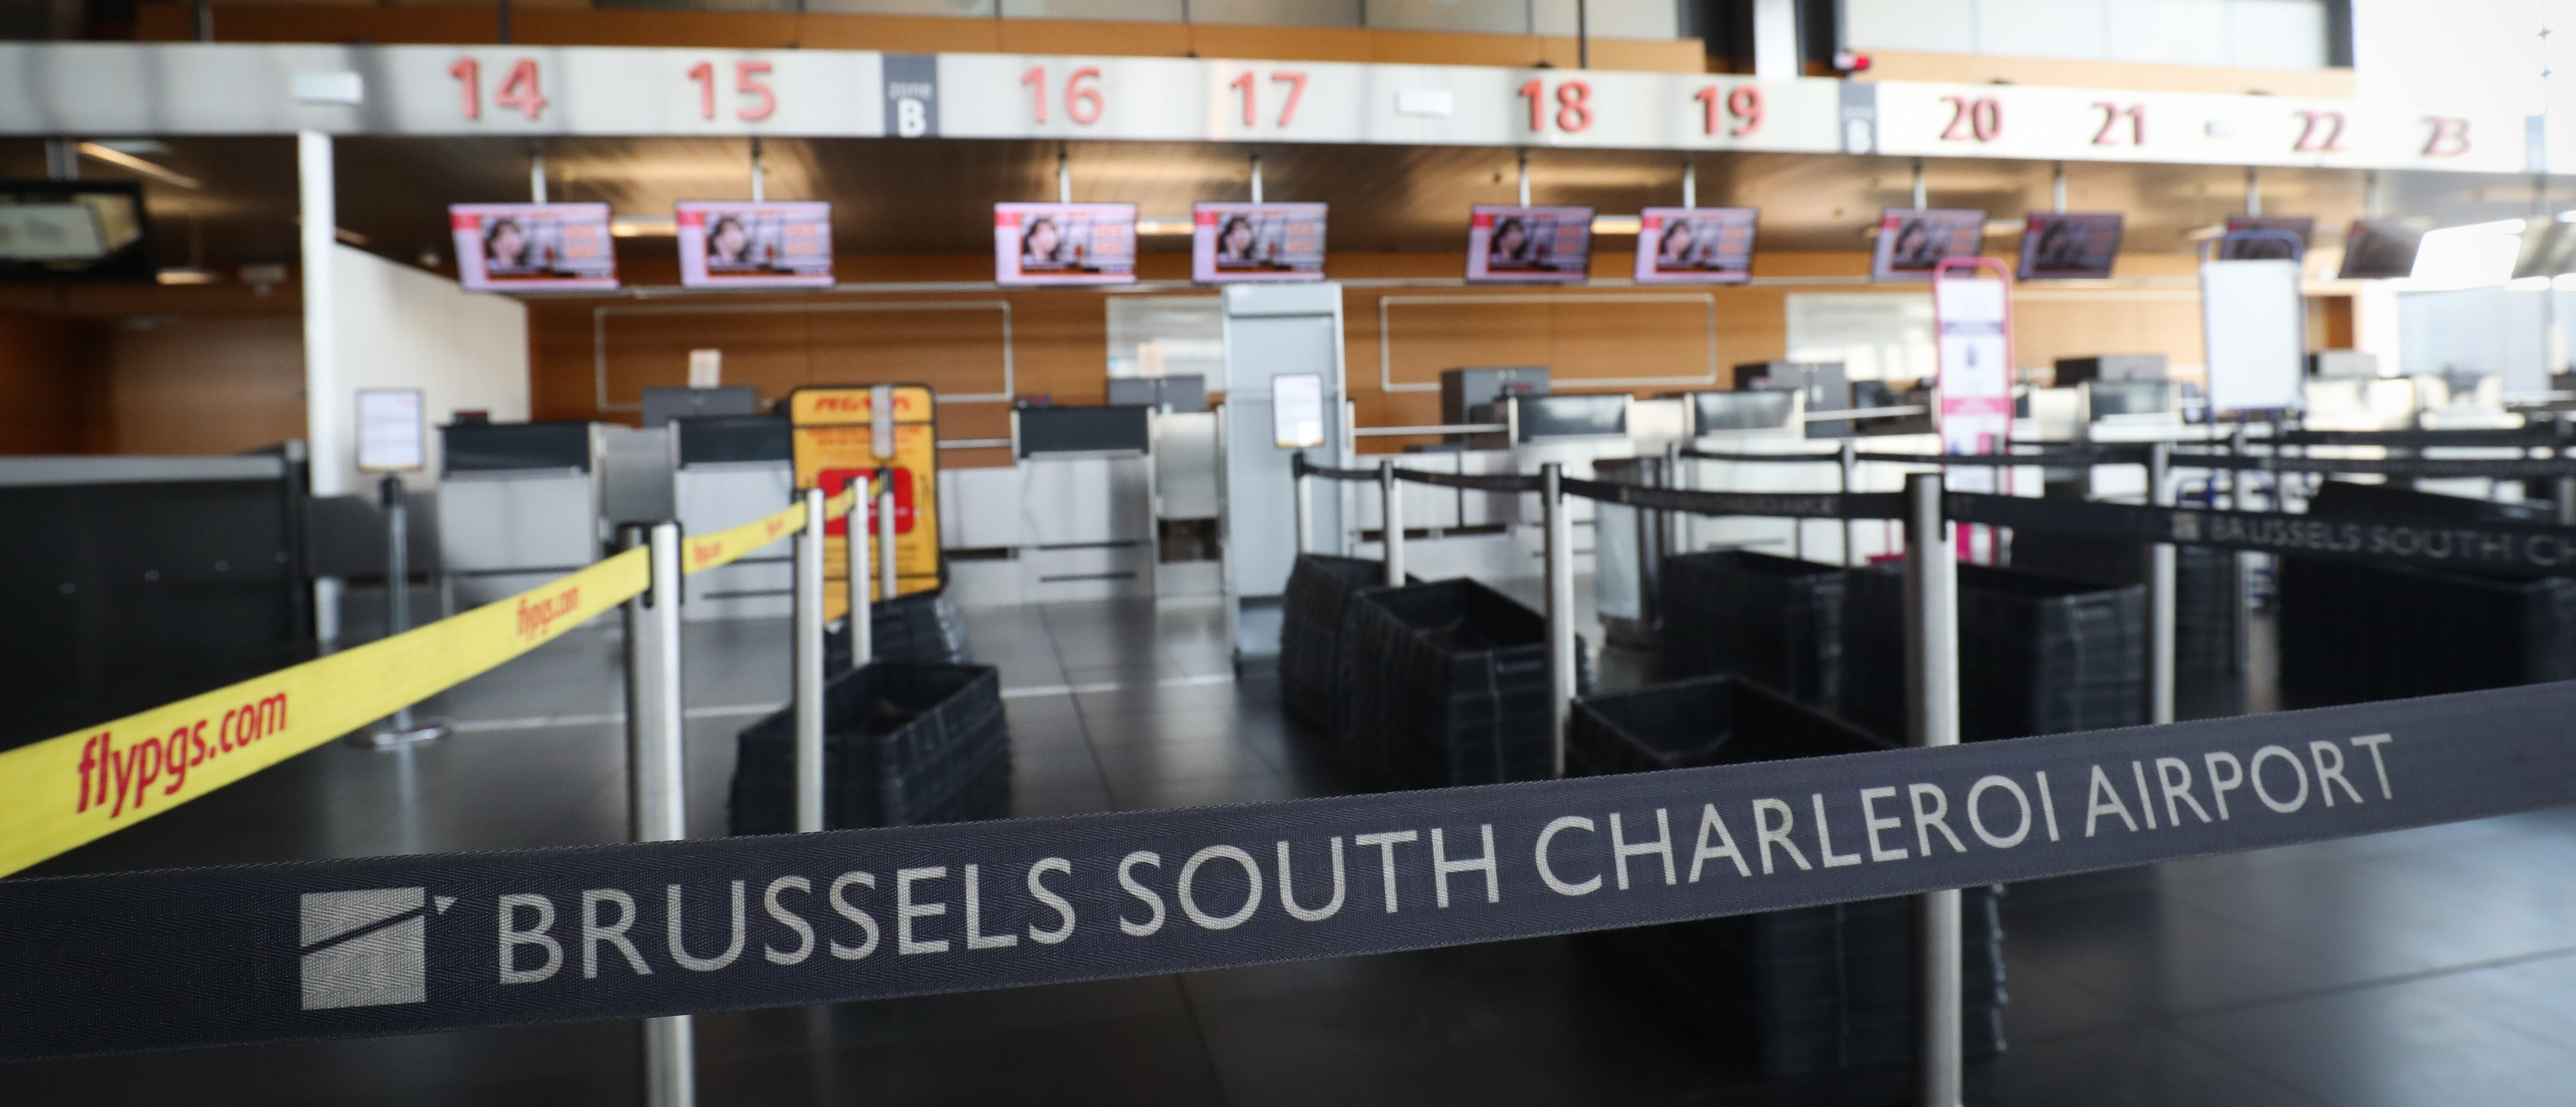 A picture shows the empty departure hall of Brussels Charleroi airport's south terminal as all the flights are cancelled during a national strike on February 13, 2019. (THIERRY ROGE/AFP/Getty Images)